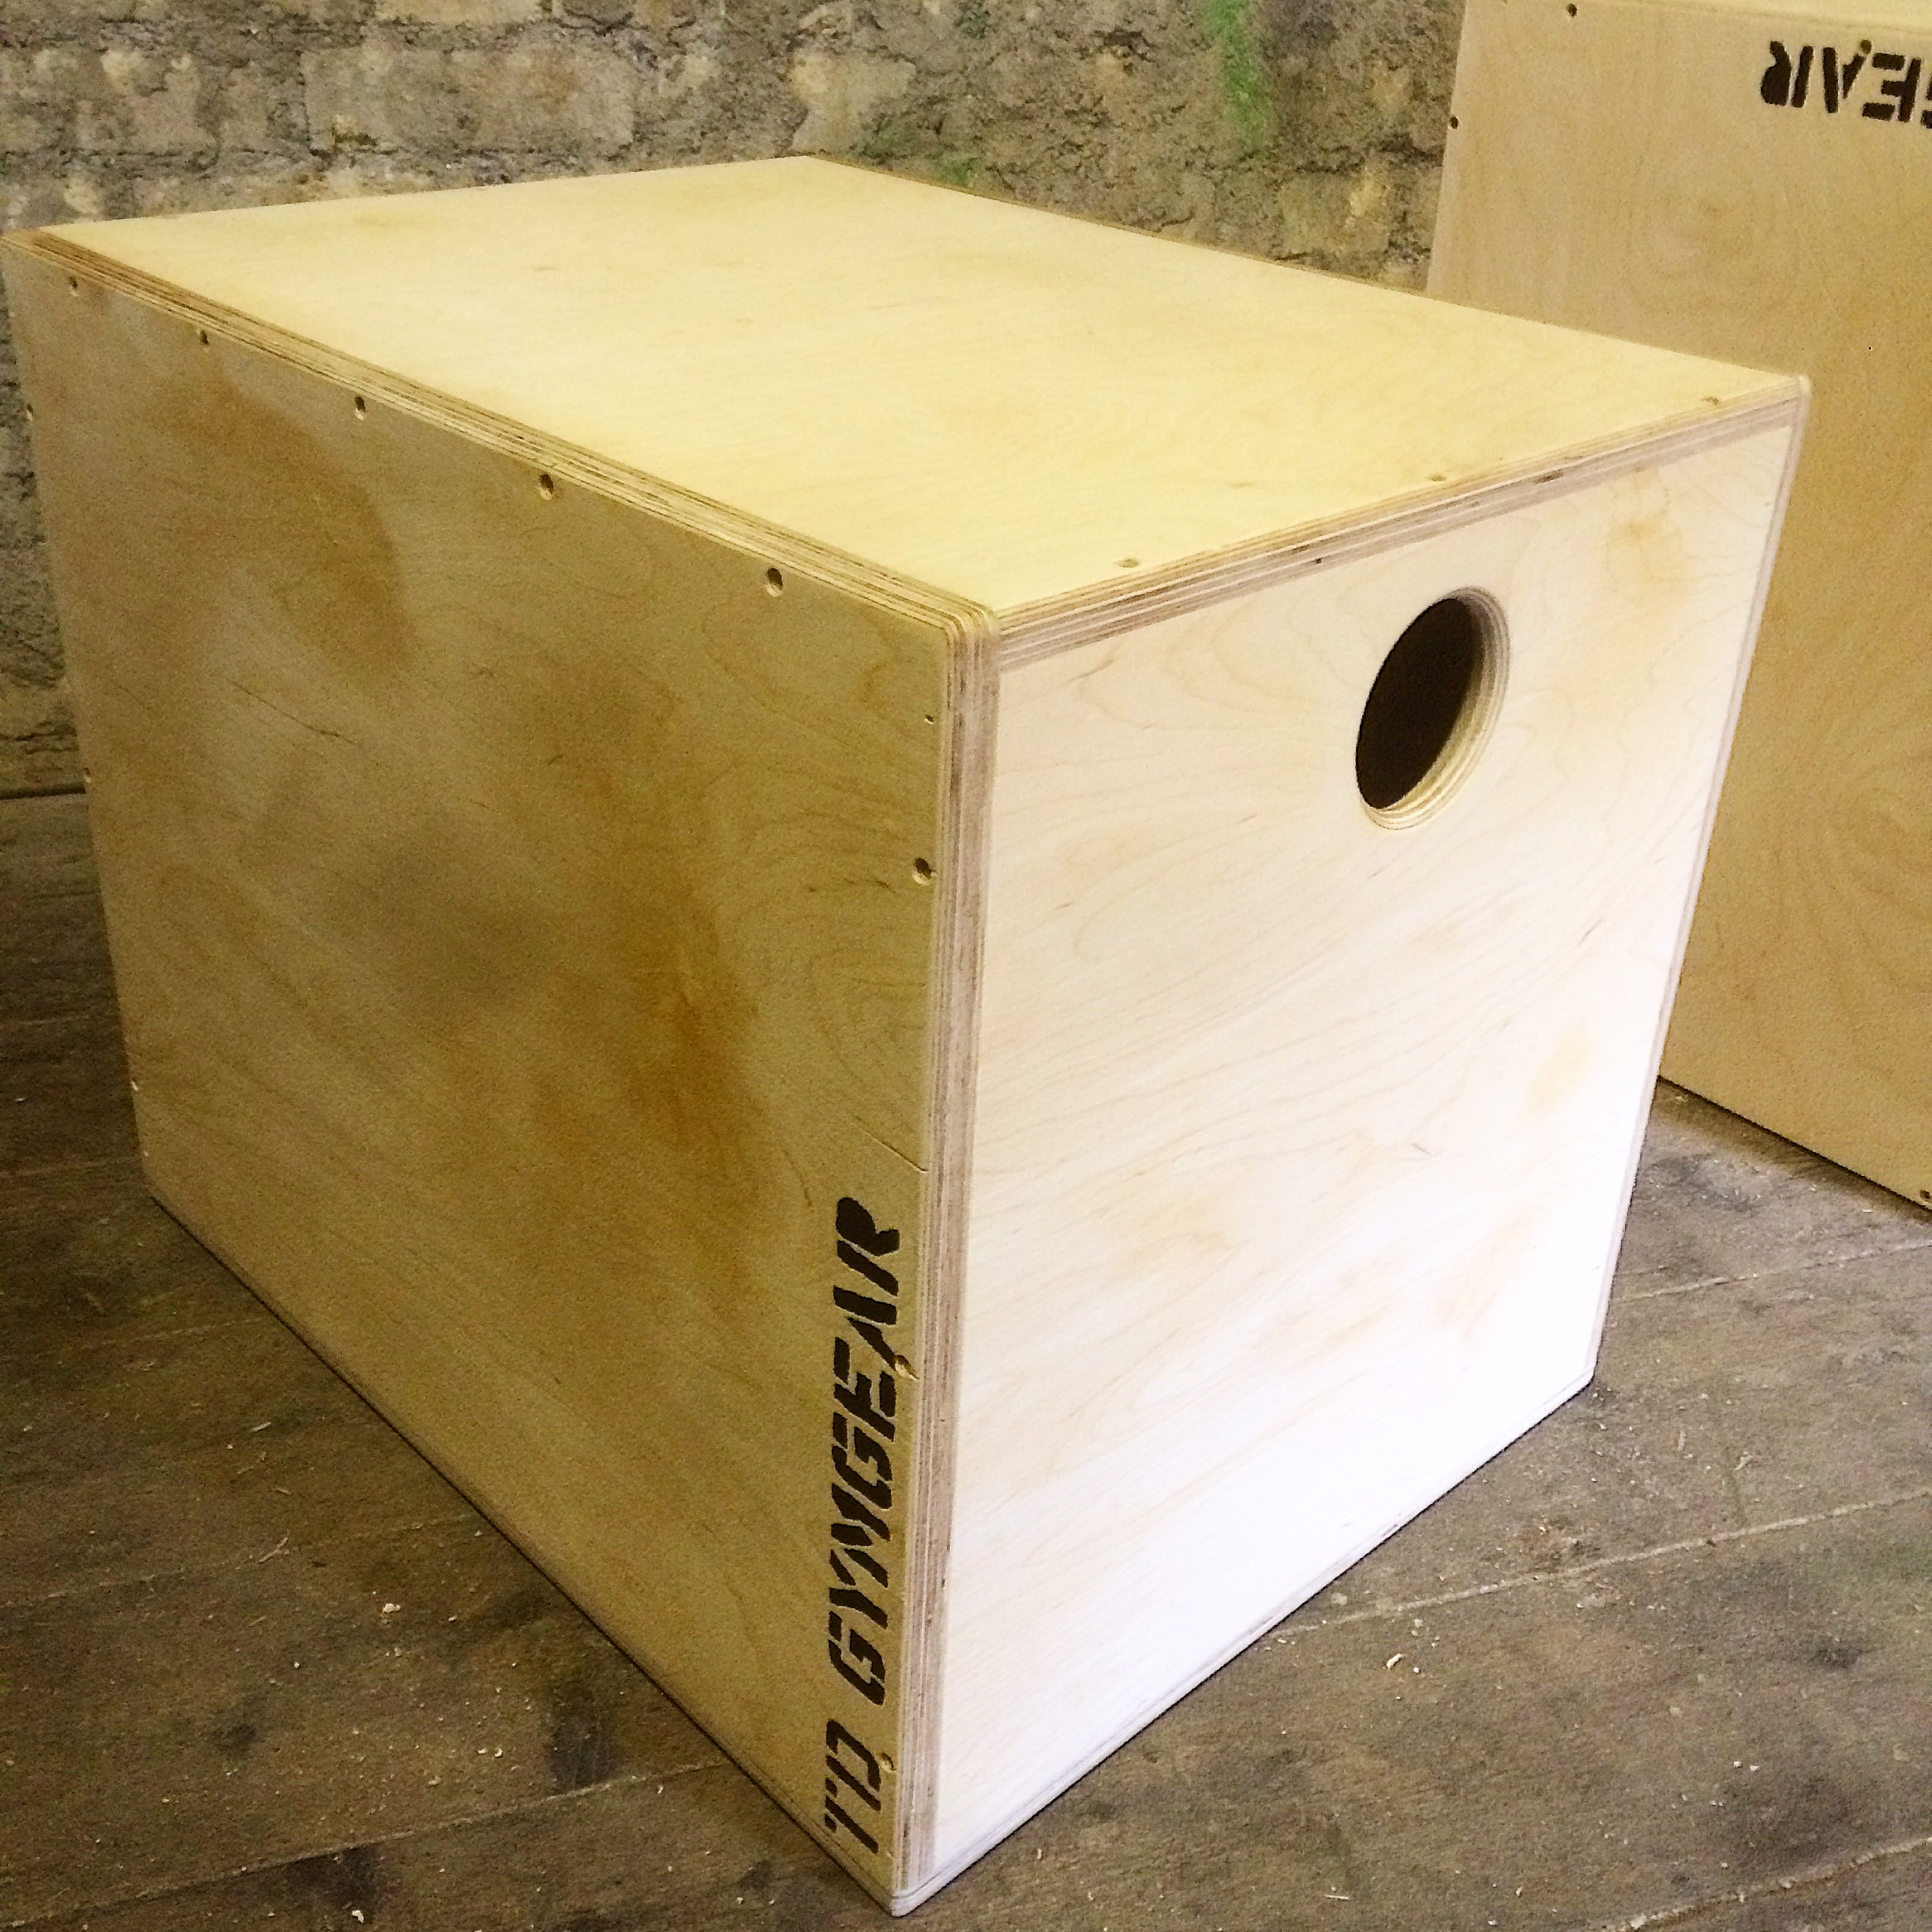 "Crossfit games style Plyo box 30""x24"",20"""